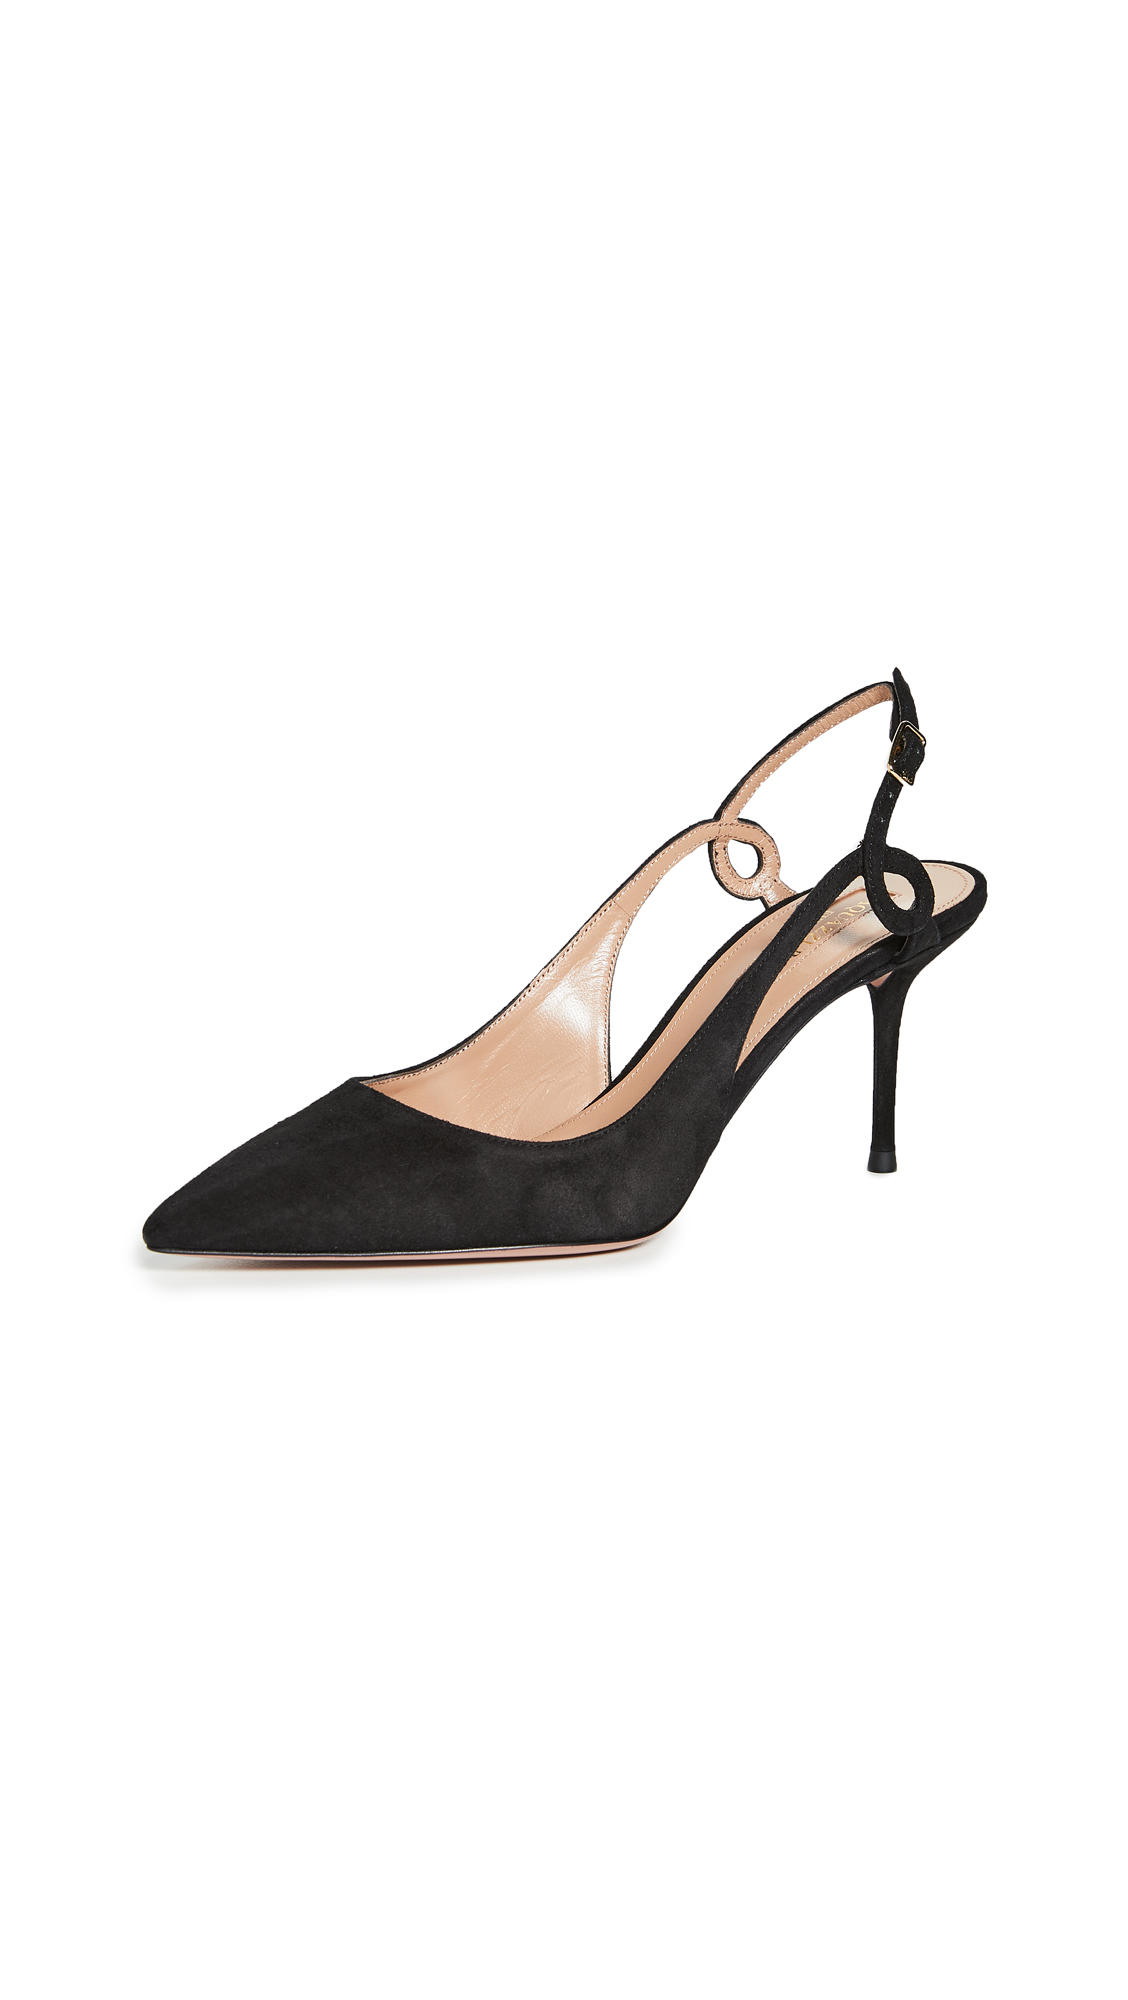 Buy Aquazzura Serpentine Slingbacks 75mm online, shop Aquazzura